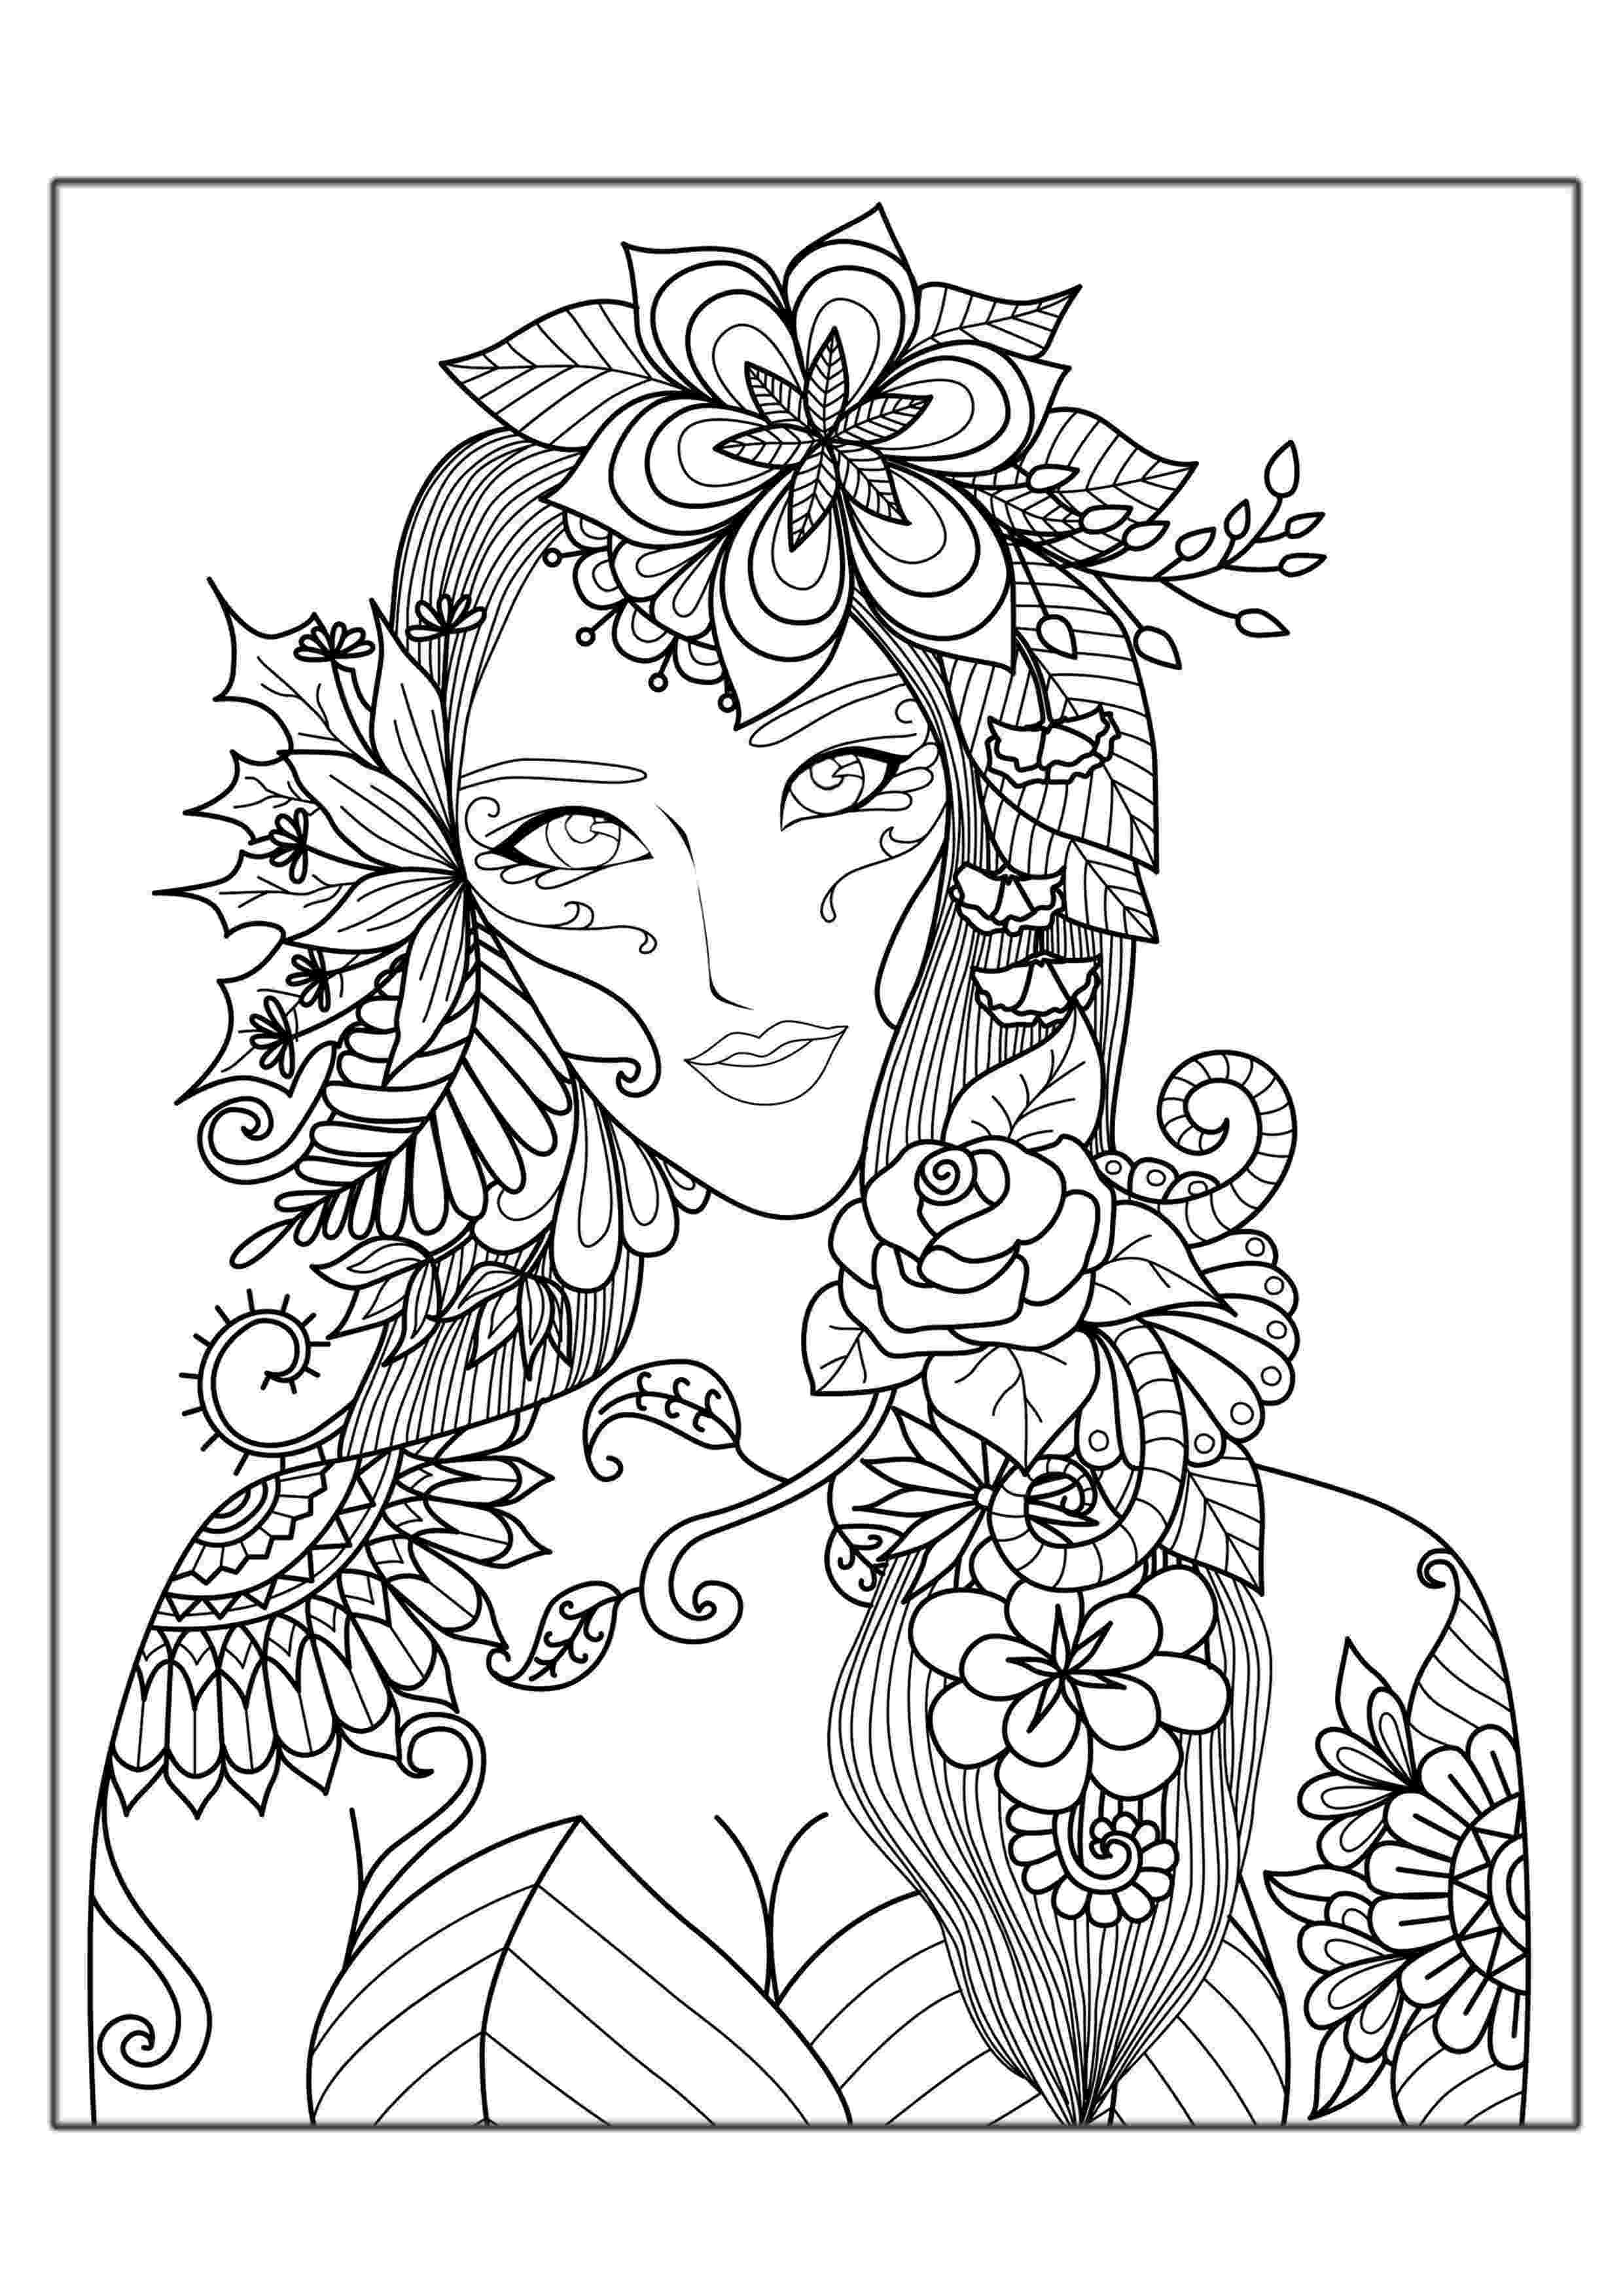 new colouring pages for adults adult coloring pages holidays new year coloring pages adults for colouring new pages